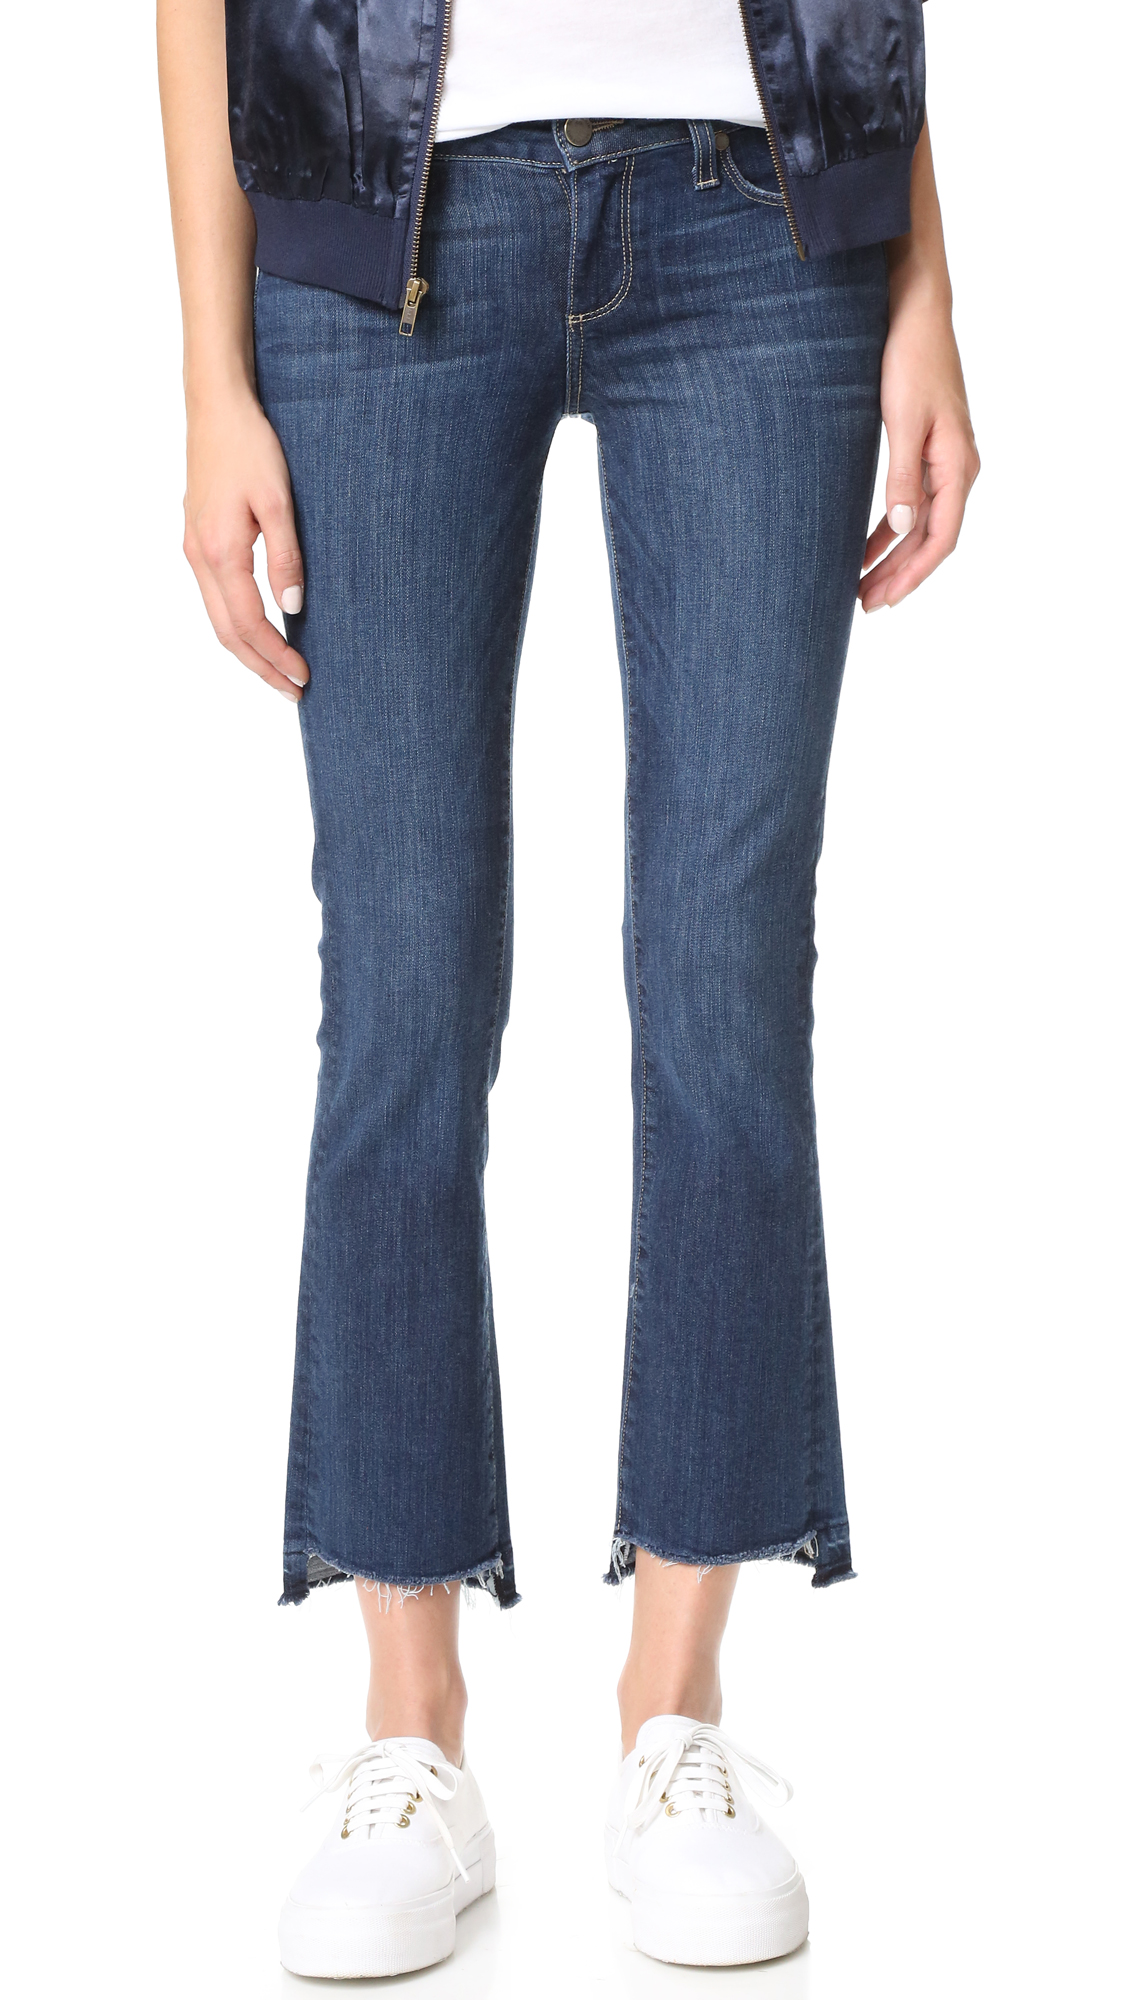 An undone, raw hem adds a worn feel to these cropped PAIGE flare jeans. 5 pocket styling. Button closure and zip fly. Fabric: Stretch denim. 91% cotton/7% polyester/2% elastane. Wash cold. Made in the USA. Measurements Rise: 8.25in / 21